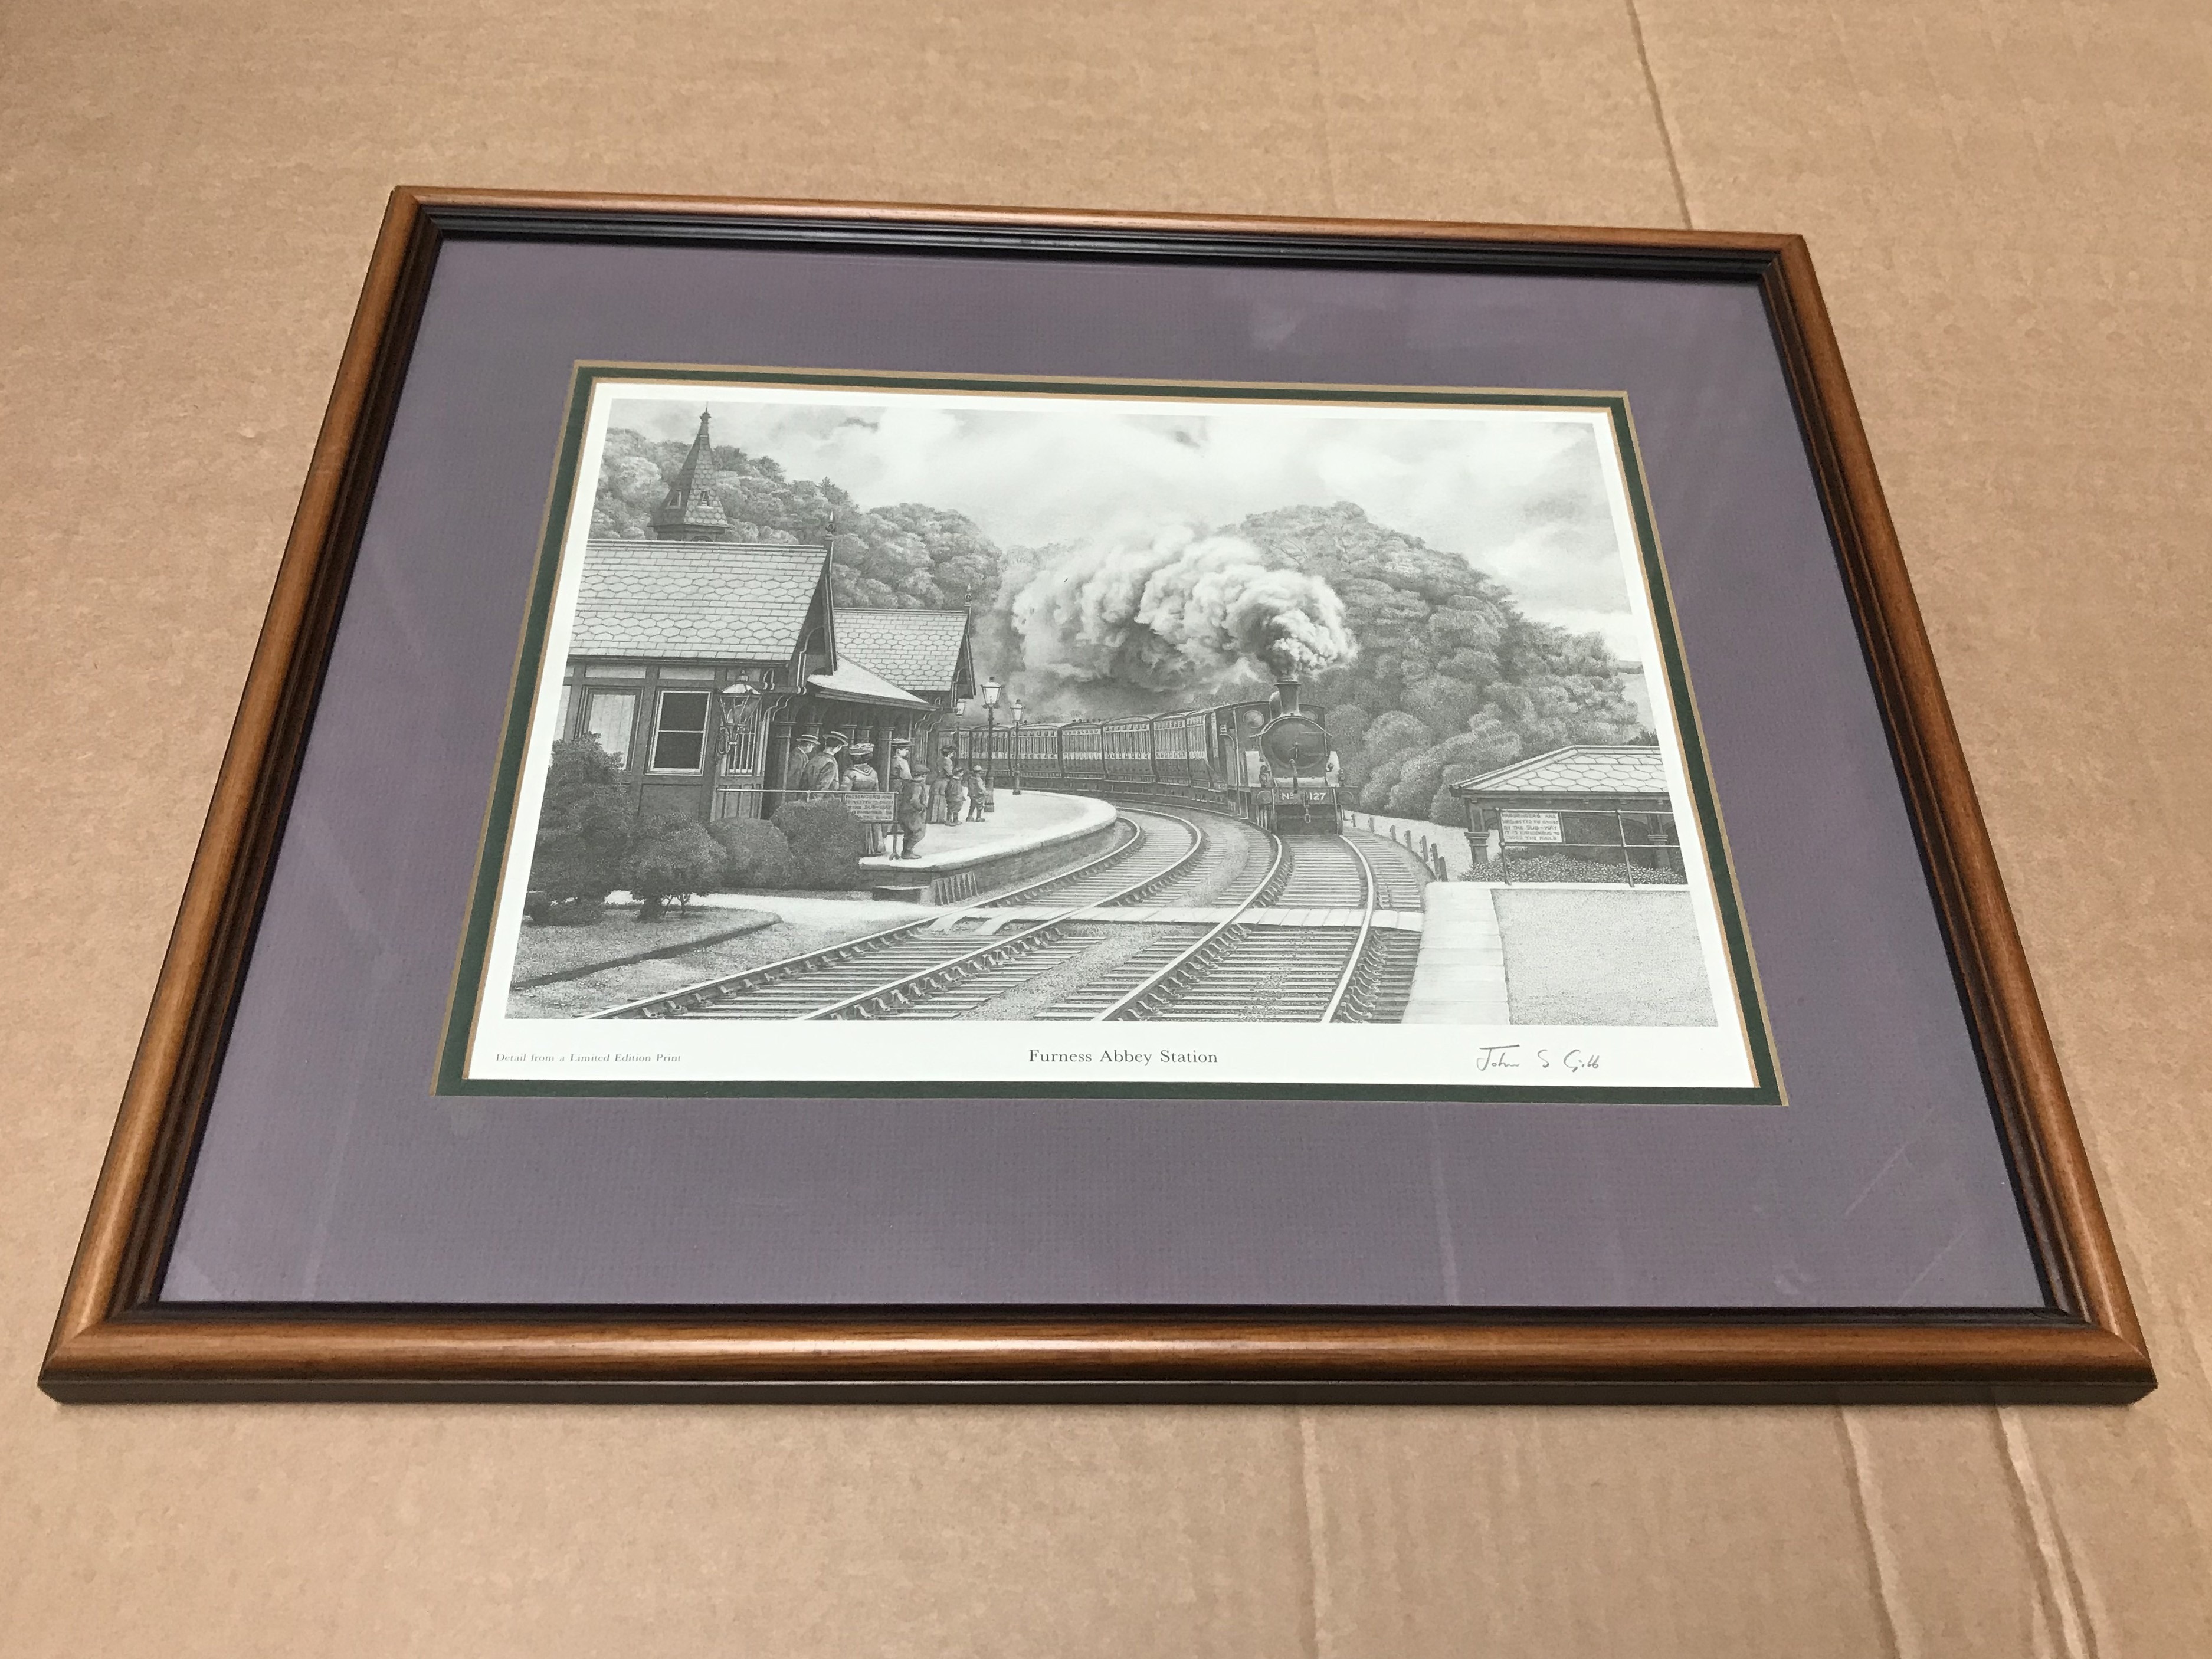 Lot 363 - SELECTION OF SIX RAILWAYS RELATED LIMITED EDITION PRINTS SIGNED BY JOHN S GIBB